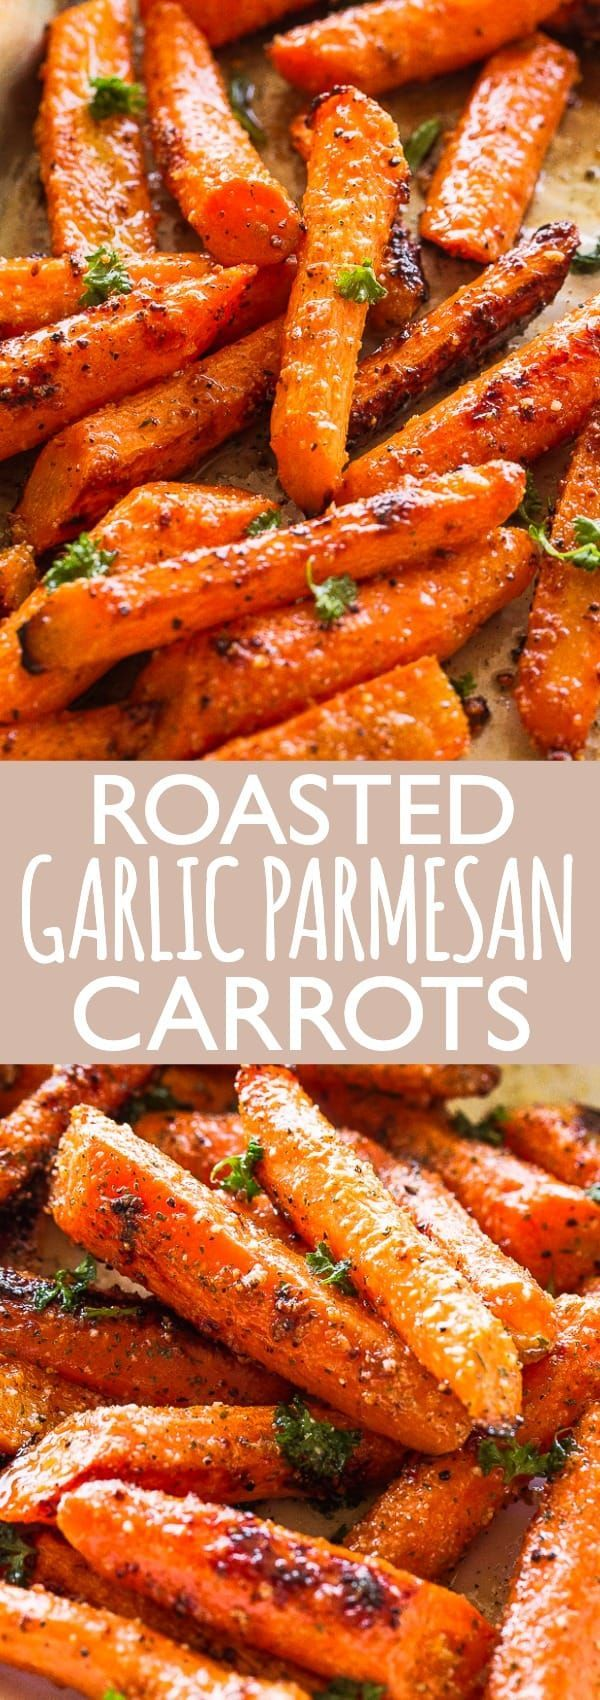 Roasted Garlic Parmesan Carrots - An easy, family favorite roasted carrots recipe tossed with the most flavorful garlicky and buttery parmesan cheese coating. The carrots come out sweet, tender and really delicious. #carrotssidedish #easter #cheese